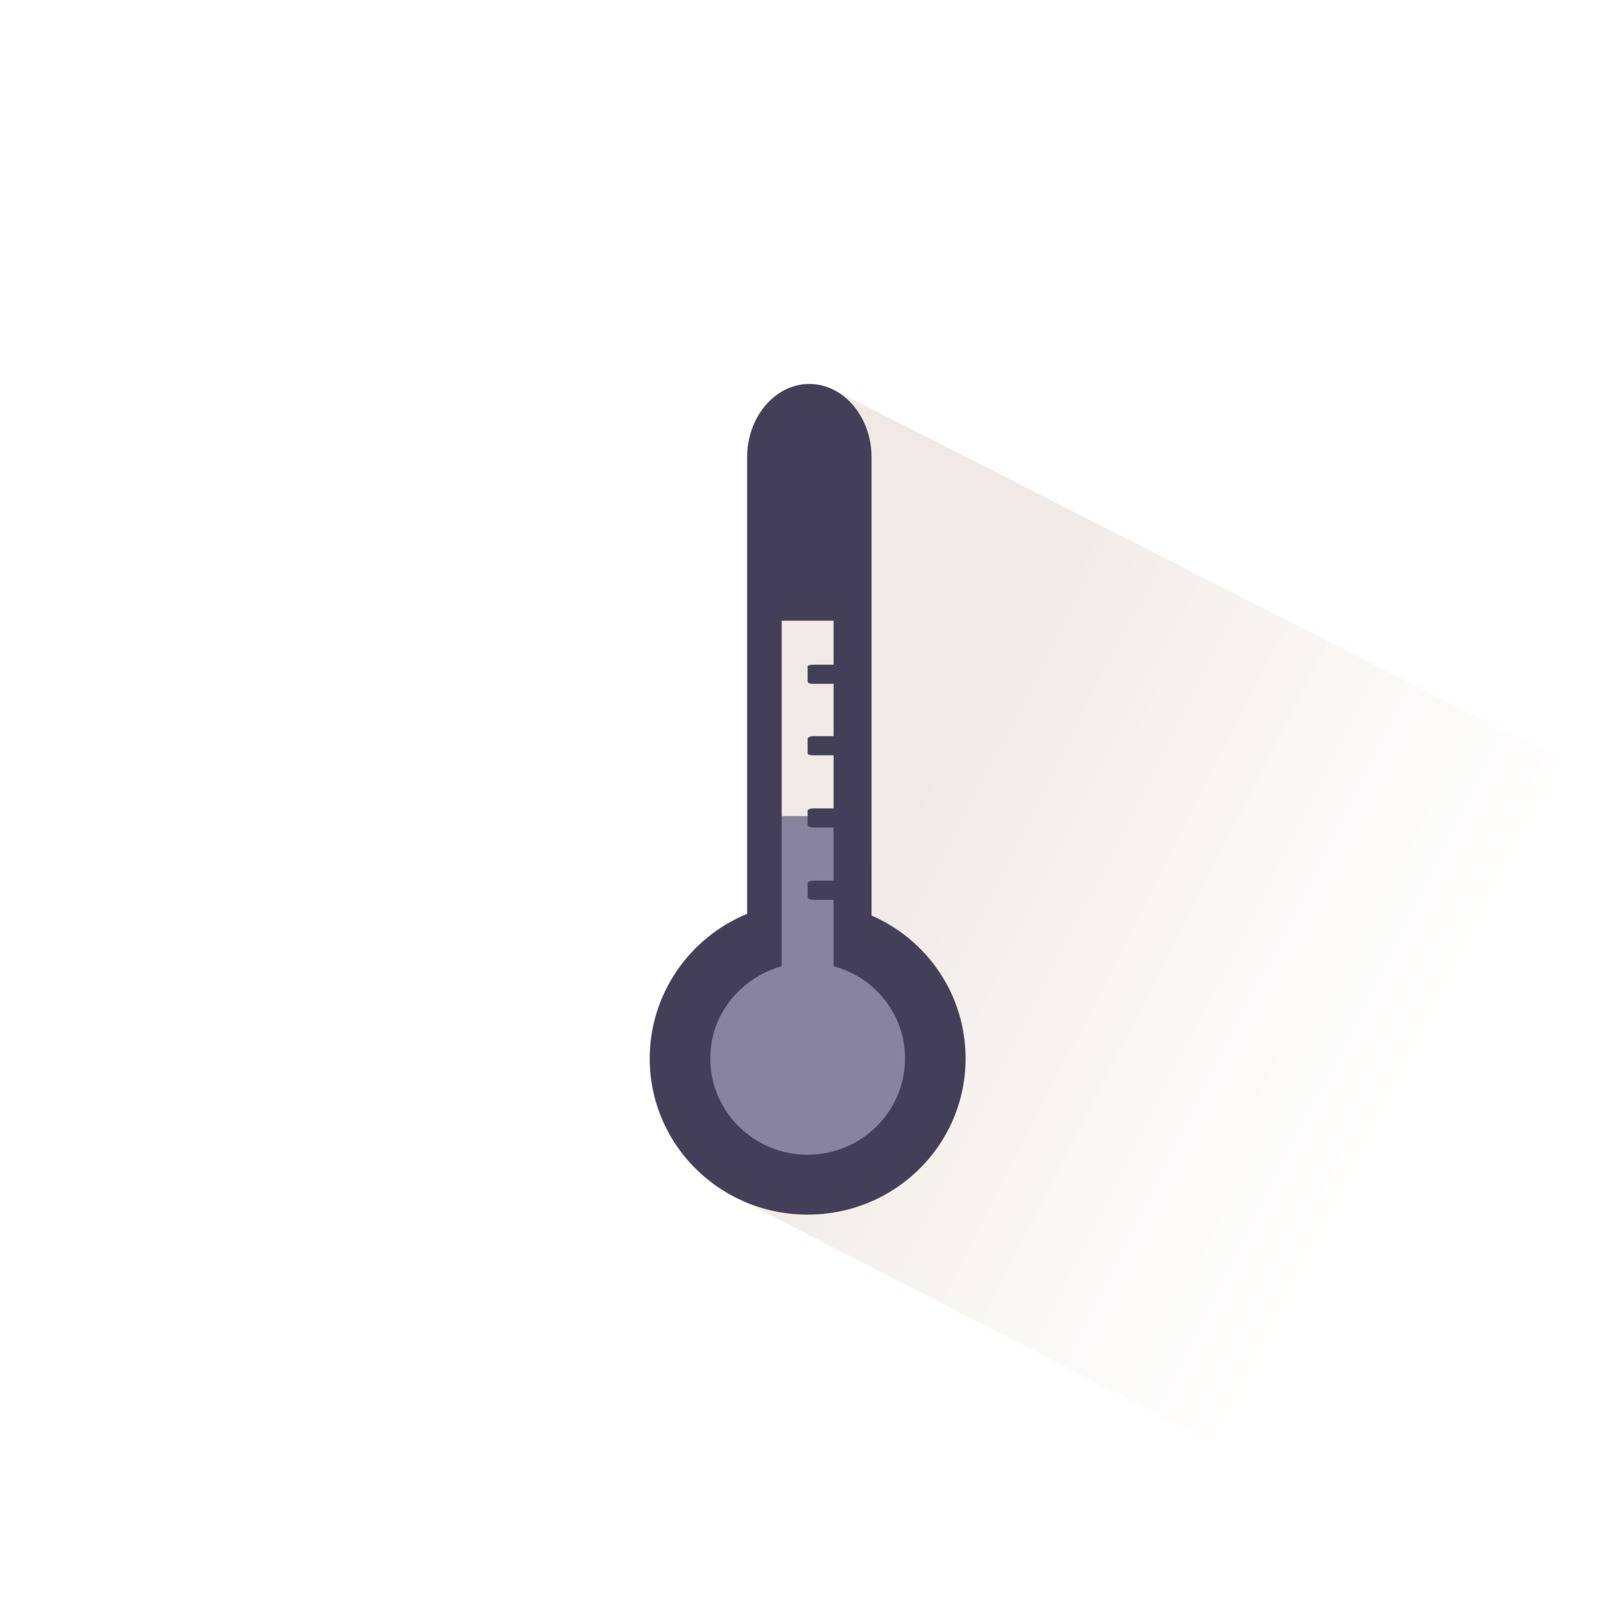 Weather thermometer color icon with shadow. Flat vector illustration